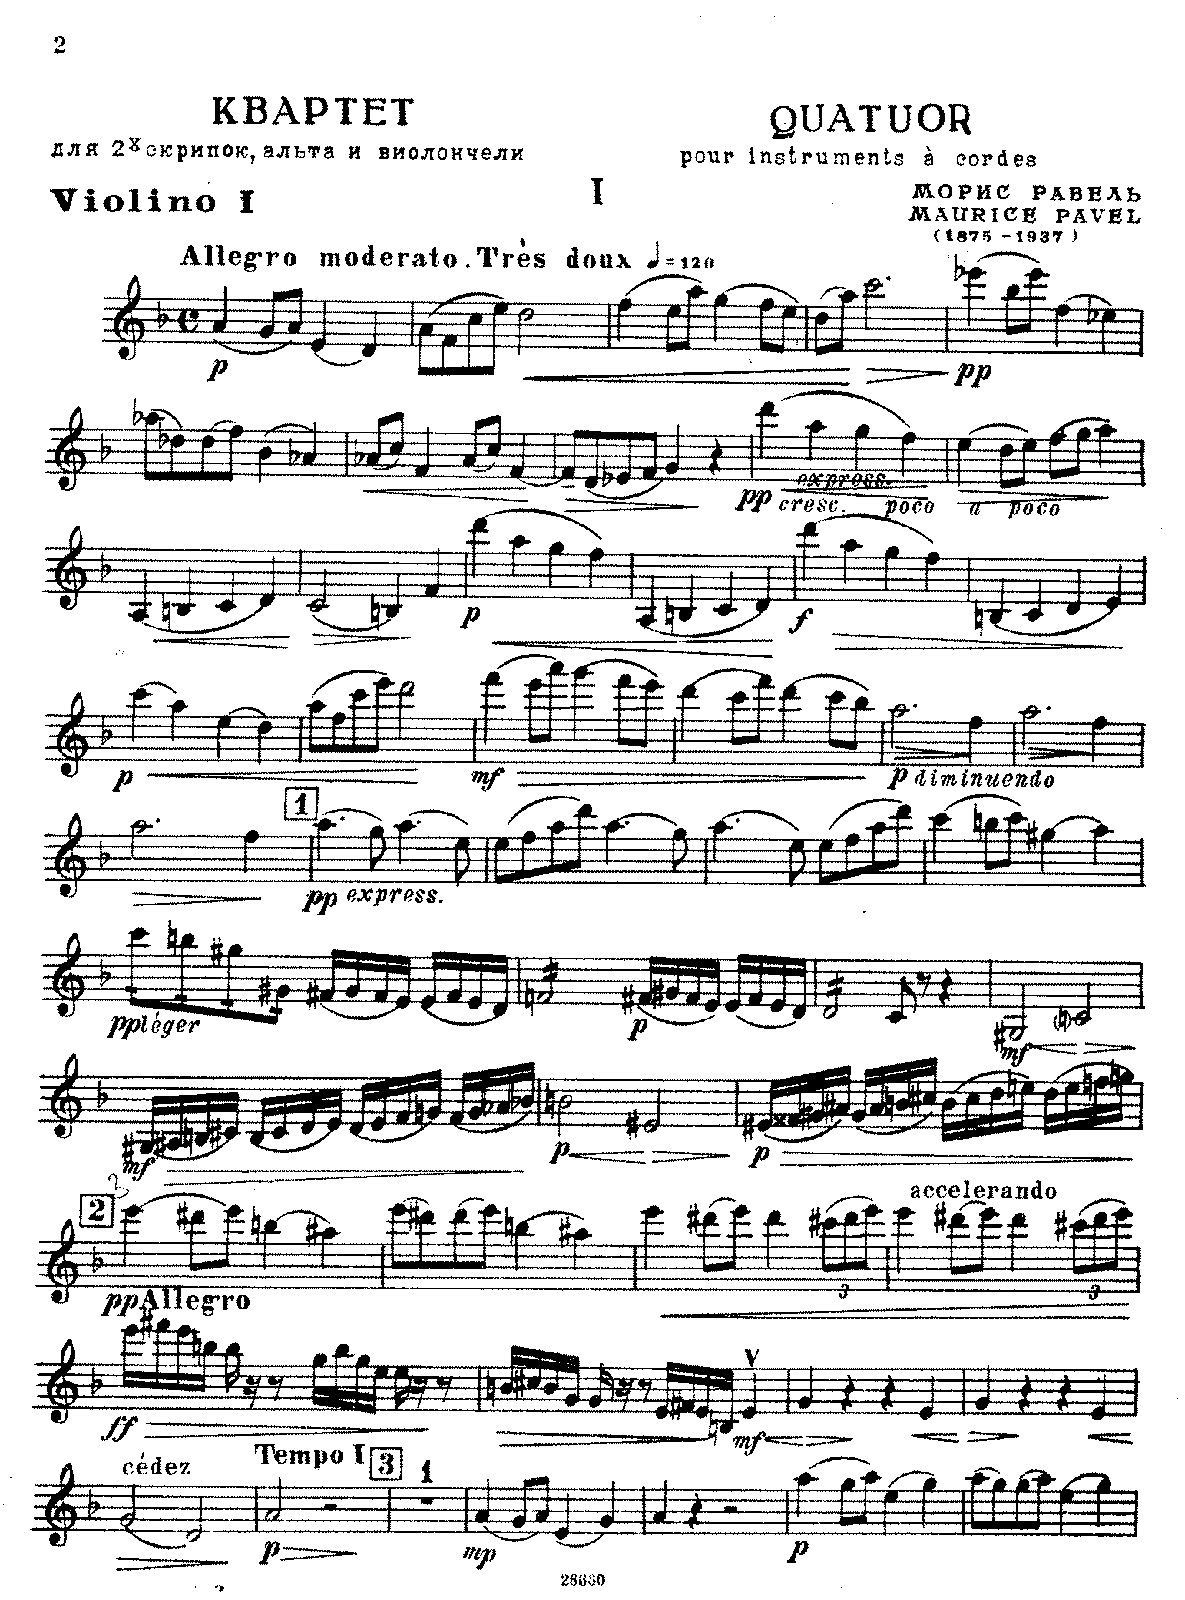 Ravel - String Quartet (Violin I).pdf